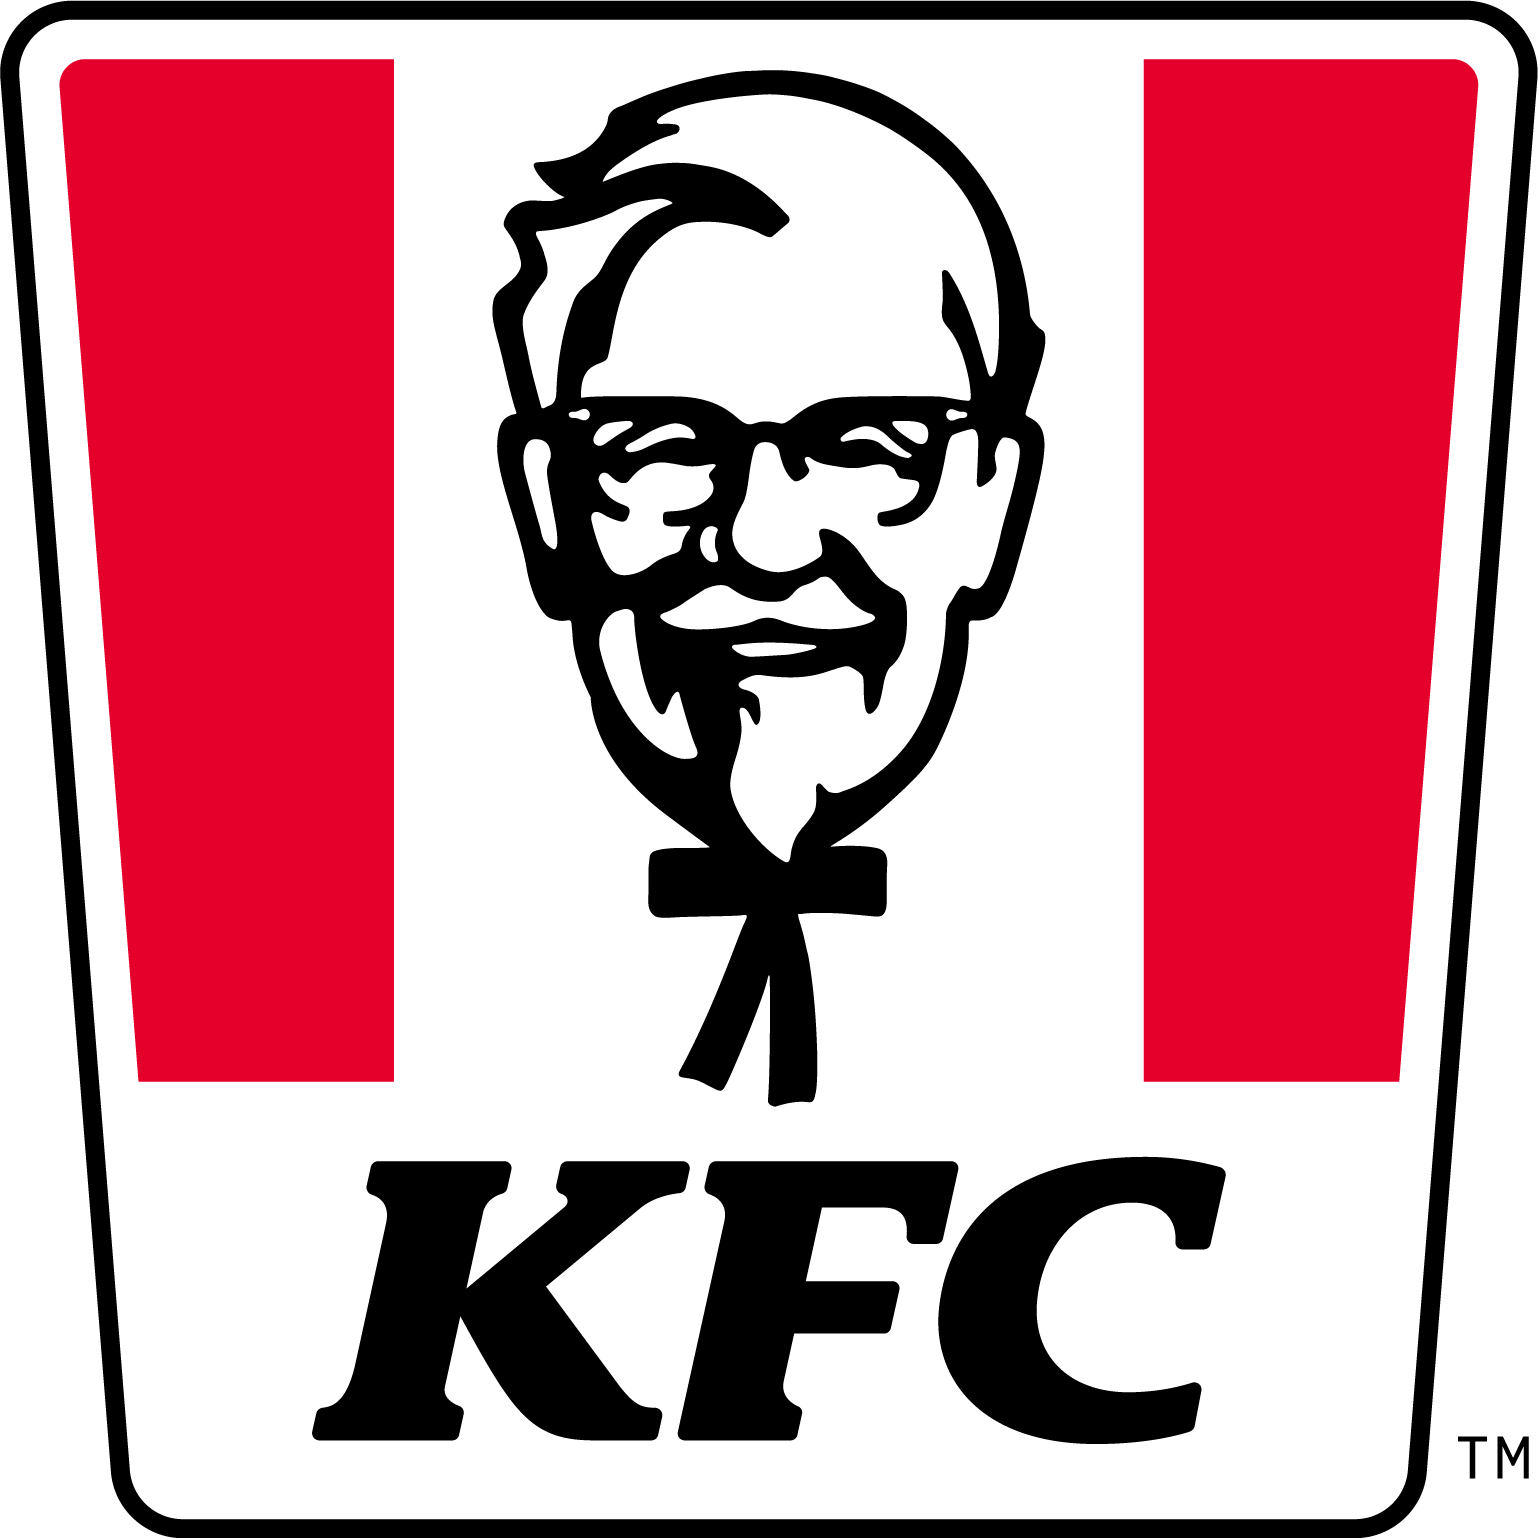 KFC - Edinburg, TX 78539 - (956)383-7342 | ShowMeLocal.com